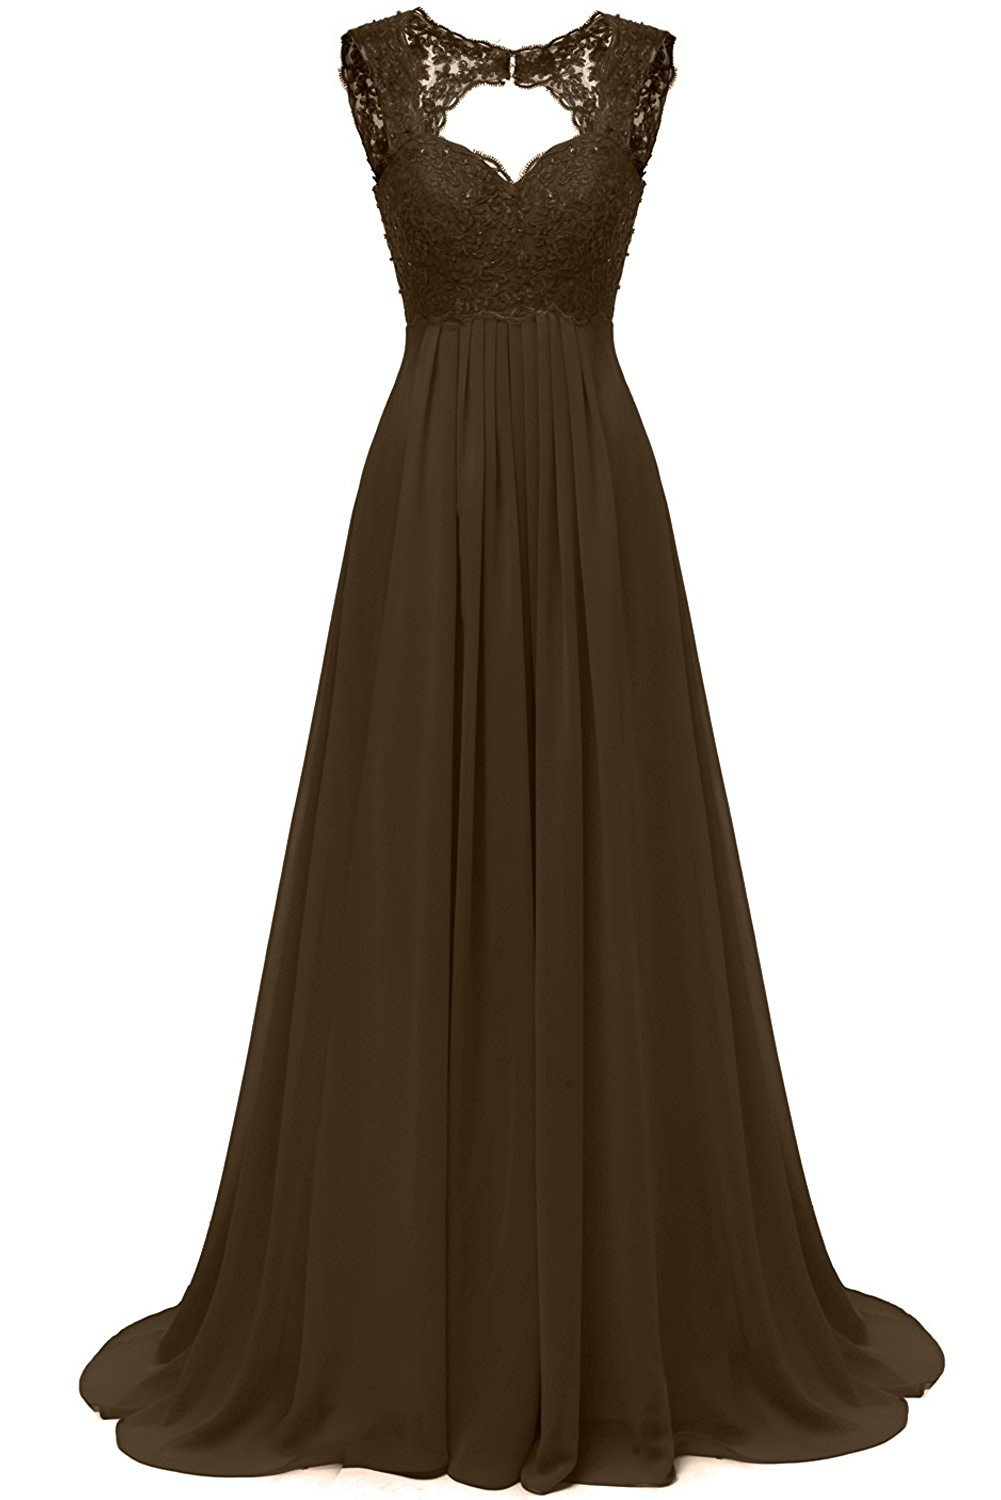 DINGZAN Beach Wedding Dresses Chiffon and Lace Bridesmaid Reception Gowns Long